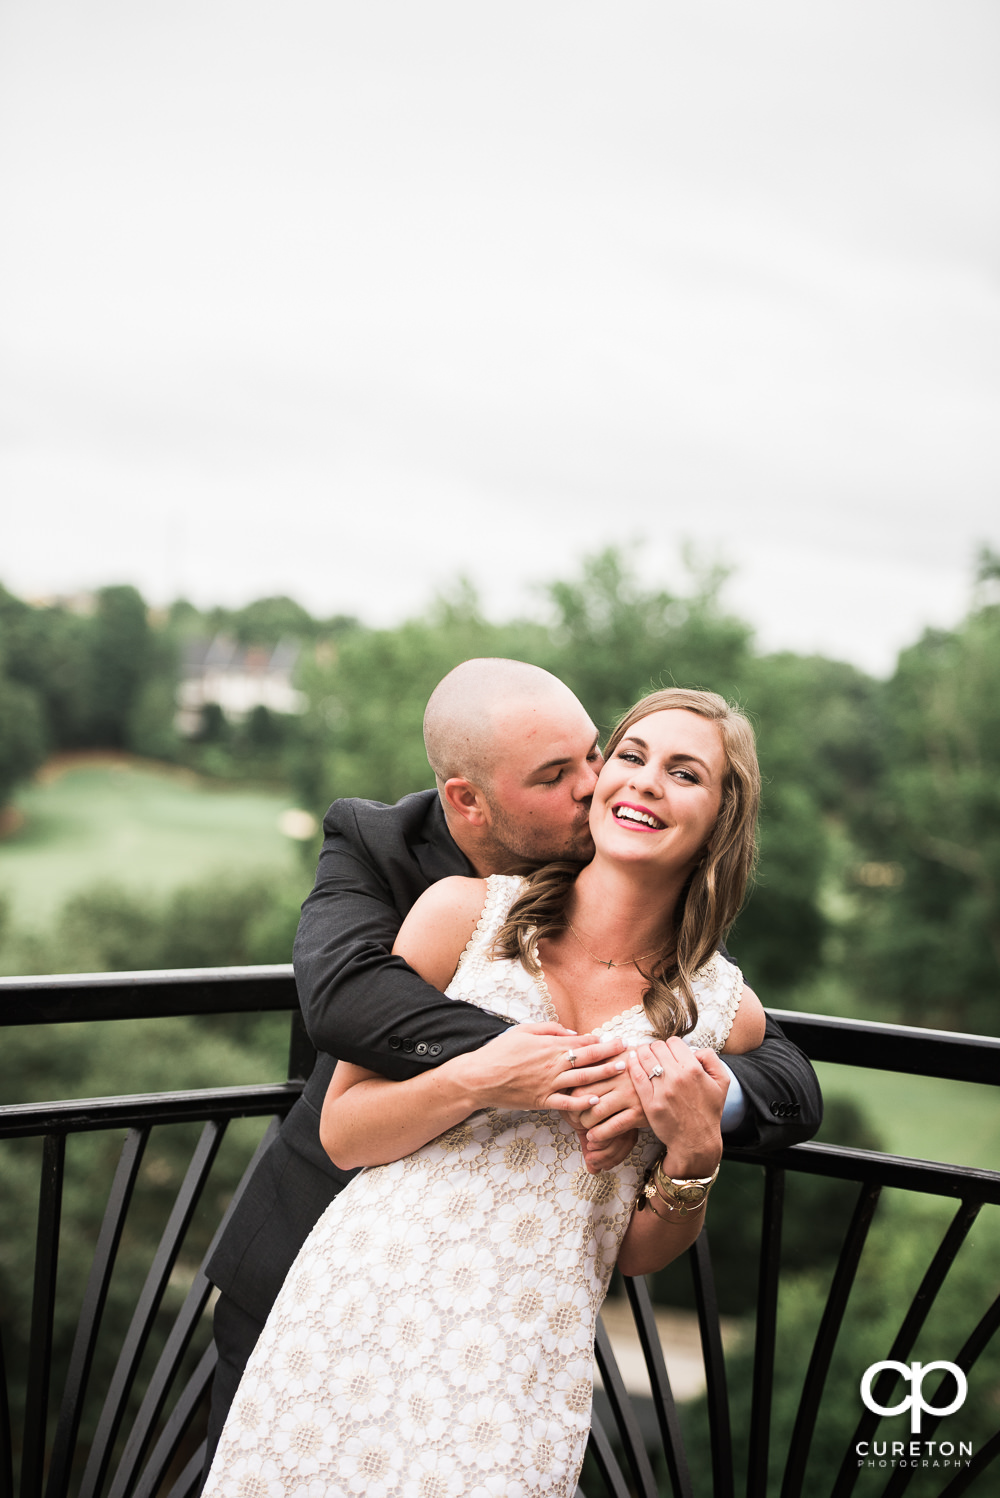 Groom kissing his bride at their wedding rehearsal dinner at the Thornblade Country Club in Greenville , SC .